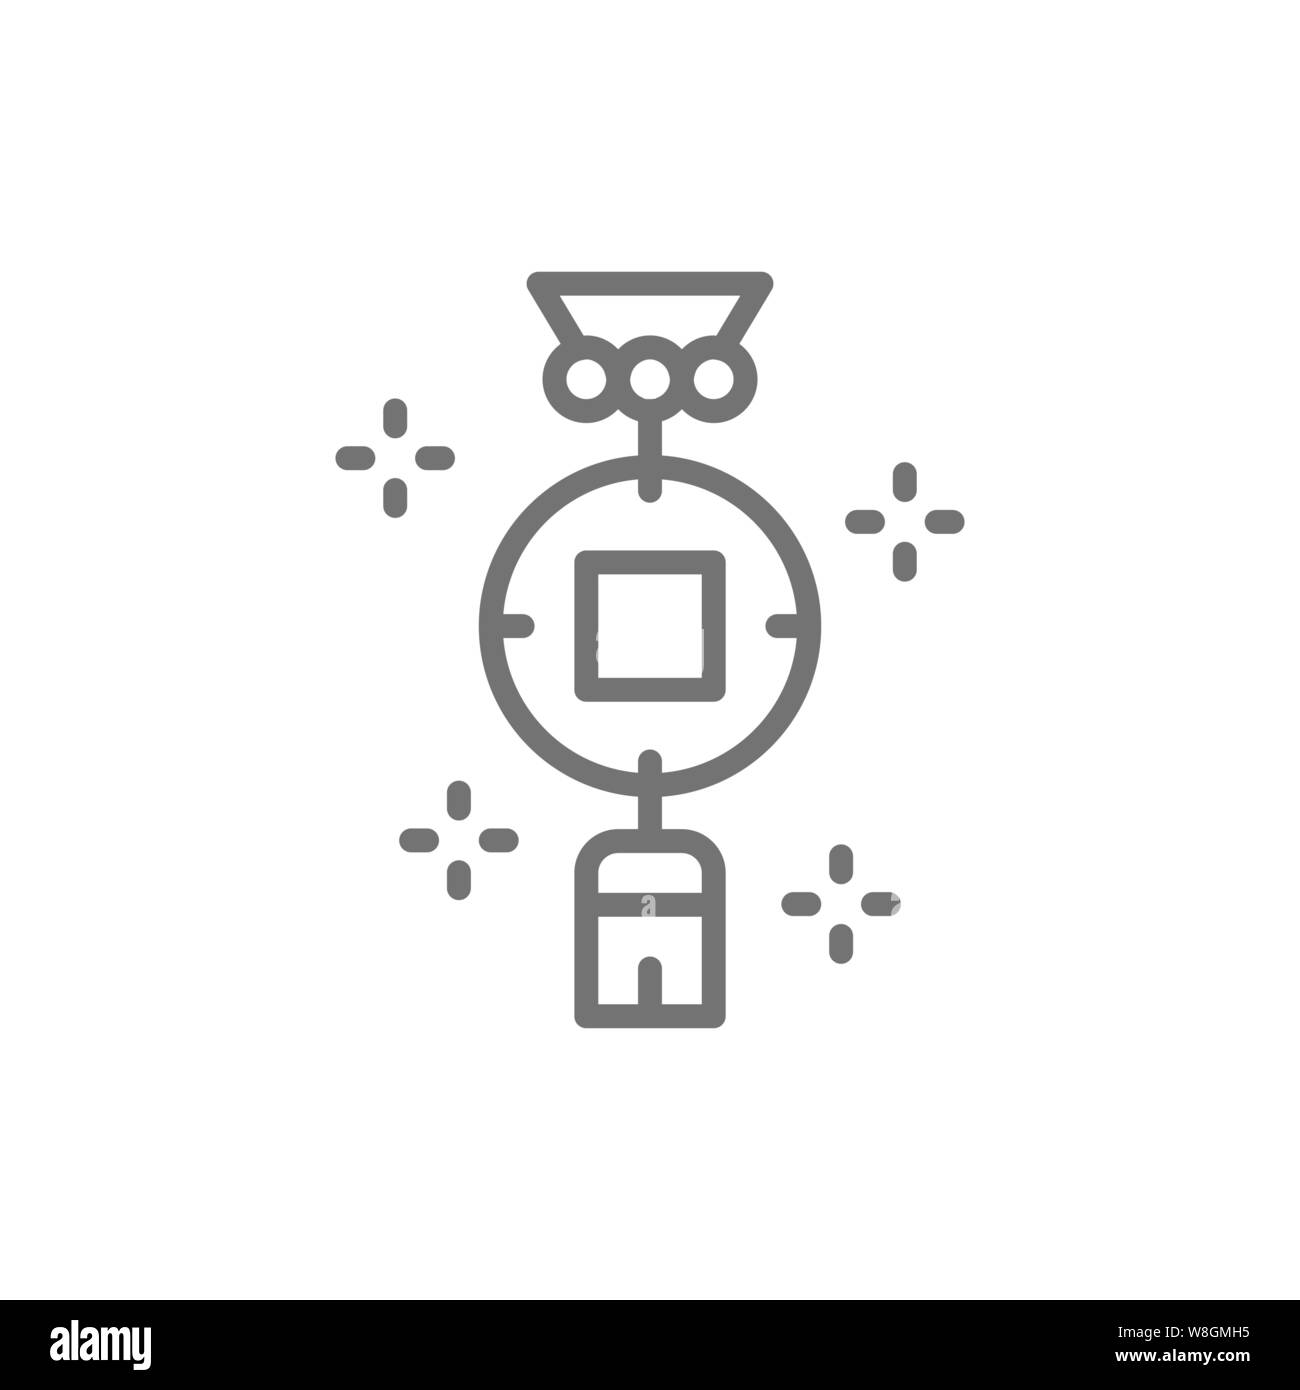 Chinese charm, feng shui coin line icon. Stock Vector